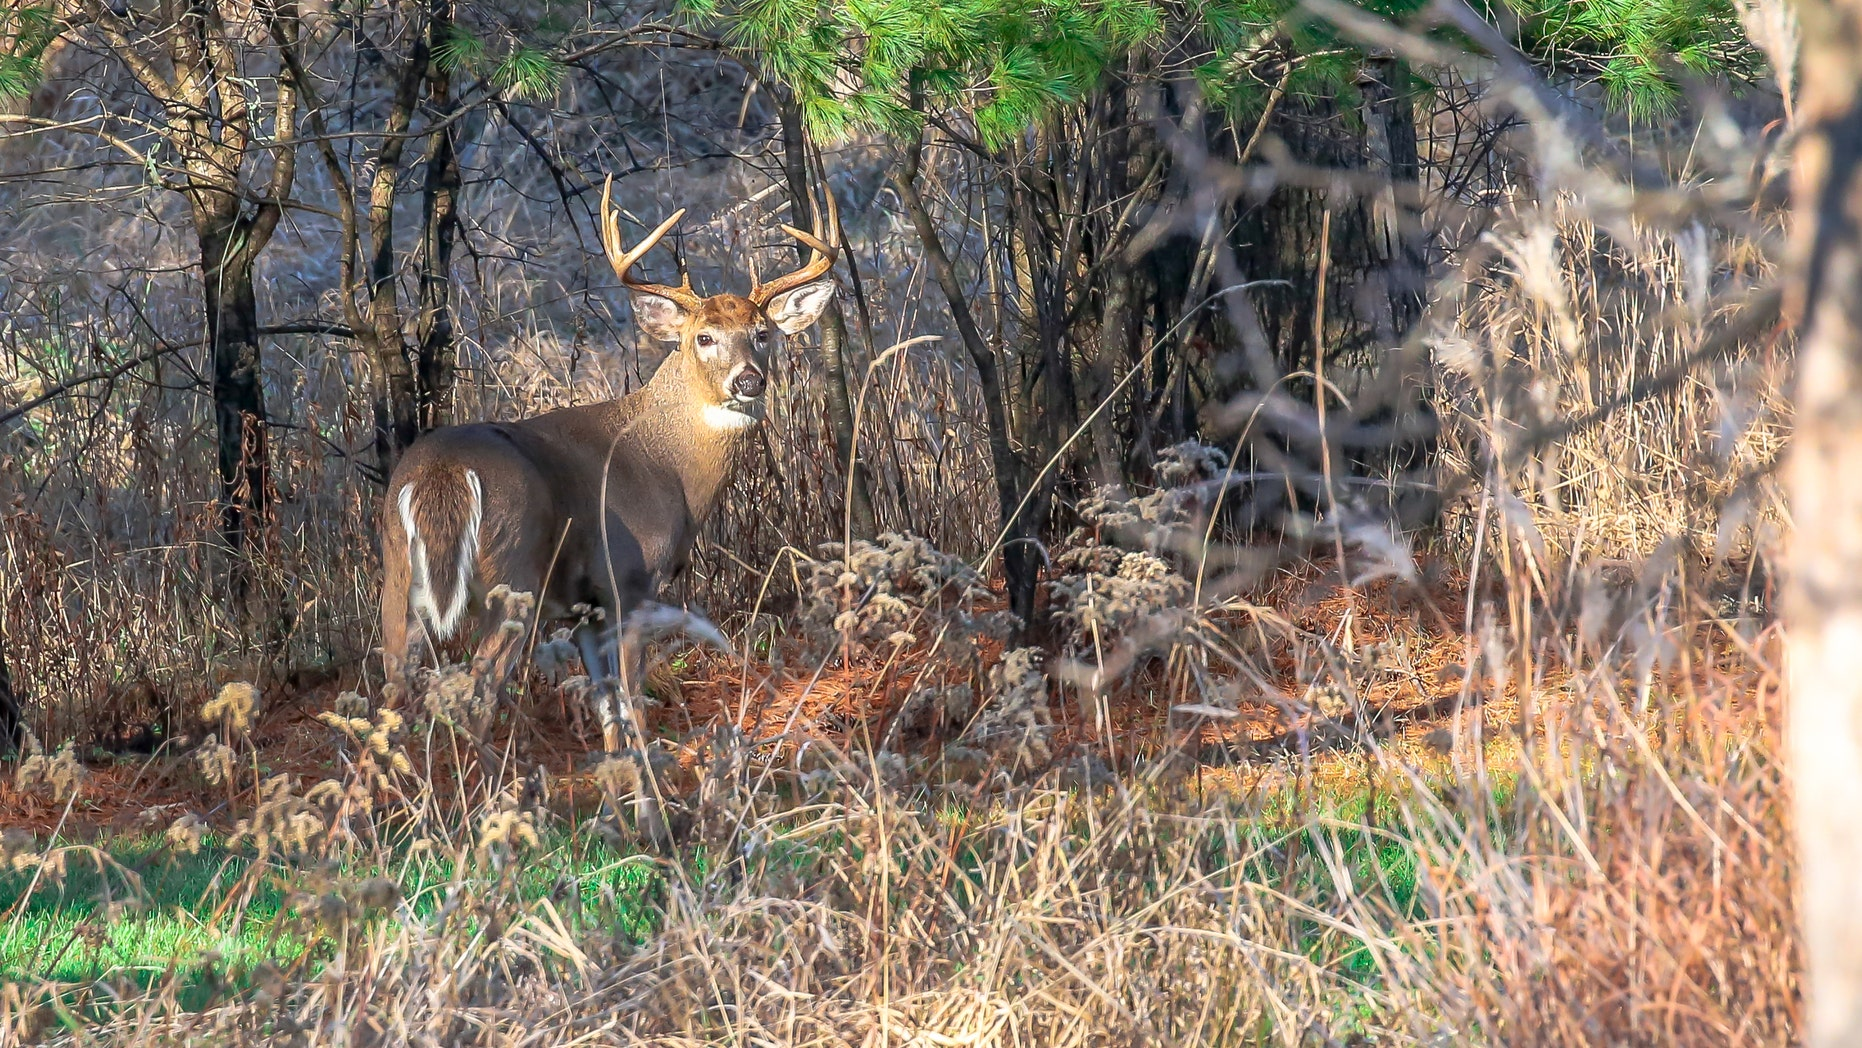 The facilities concerned are not allowed to move live deer on their premises, but they may choose to keep the unaffected deer alive.